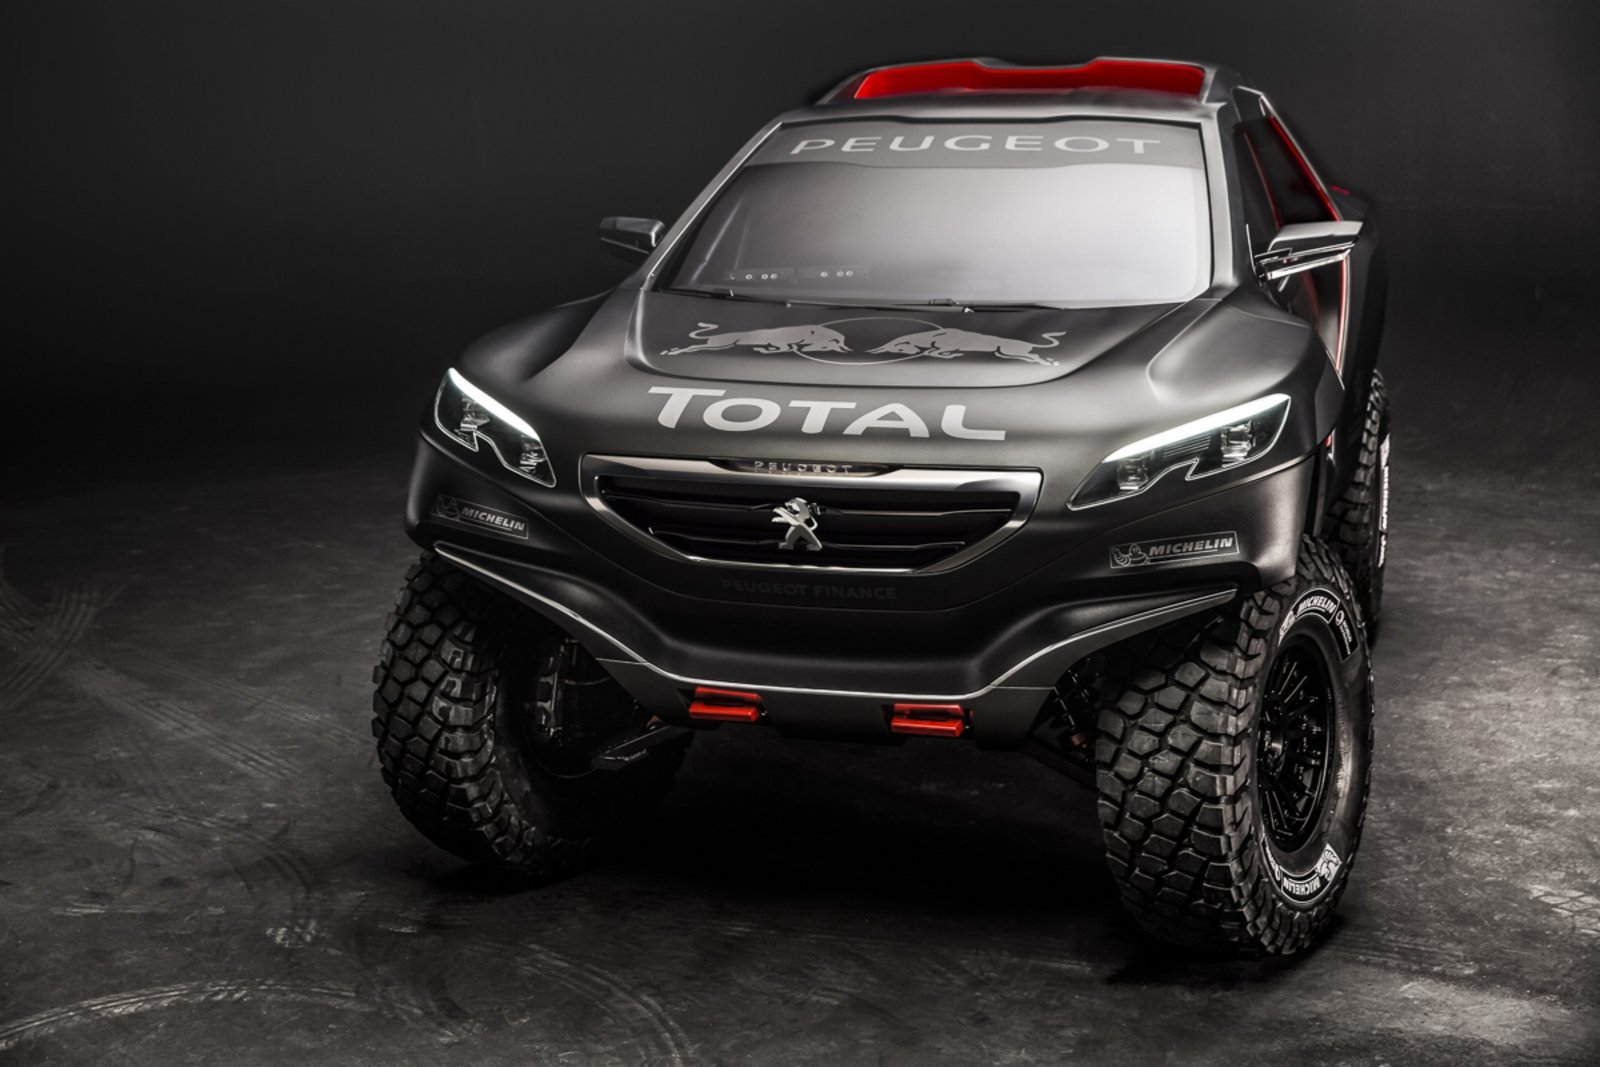 2014 peugeot 2008 dkr review top speed. Black Bedroom Furniture Sets. Home Design Ideas